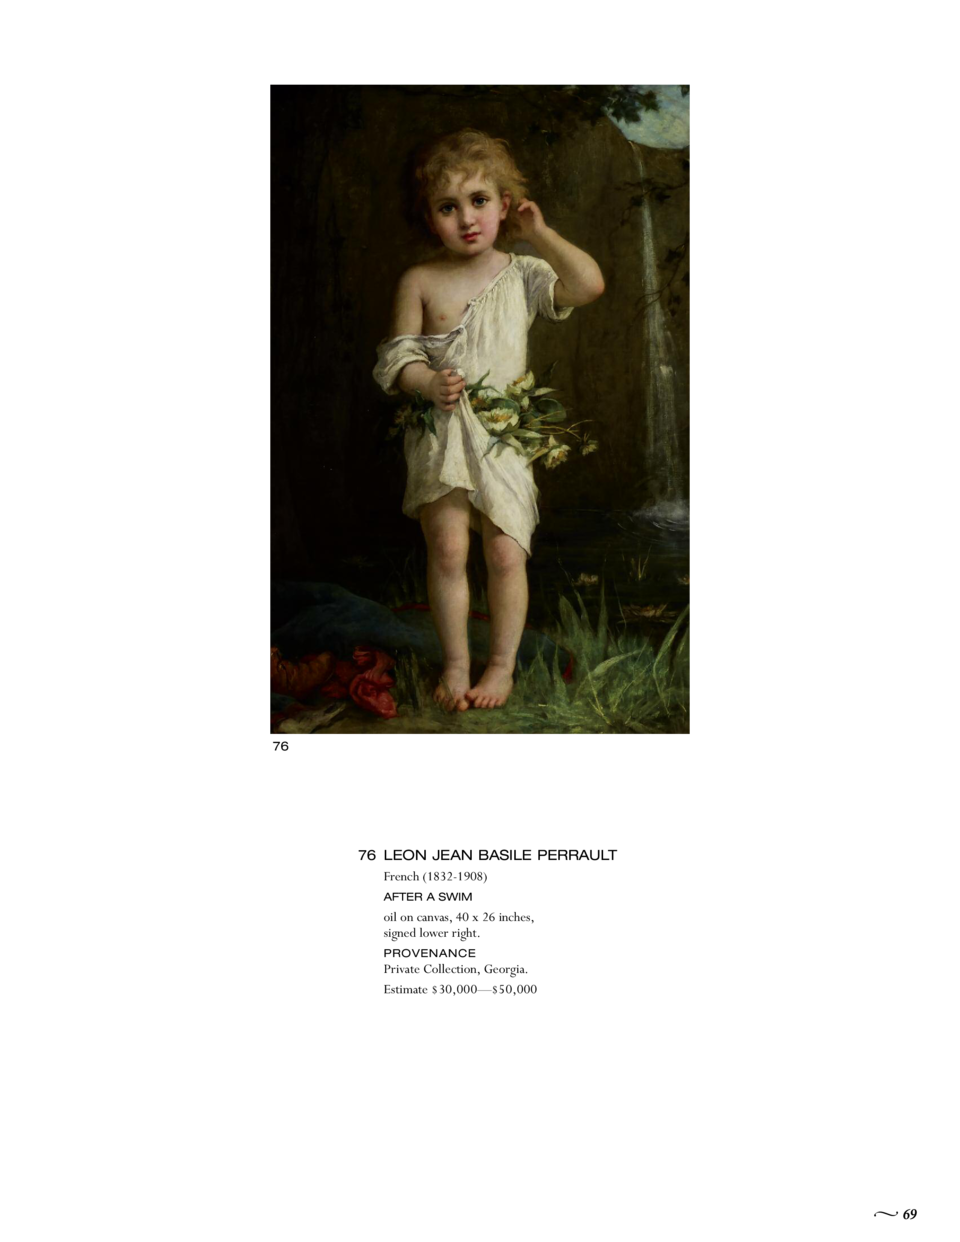 76  76 LEON JEAN BASILE PERRAULT French  1832-1908  AFTER A SWIM  oil on canvas, 40 x 26 inches, signed lower right. Priva...